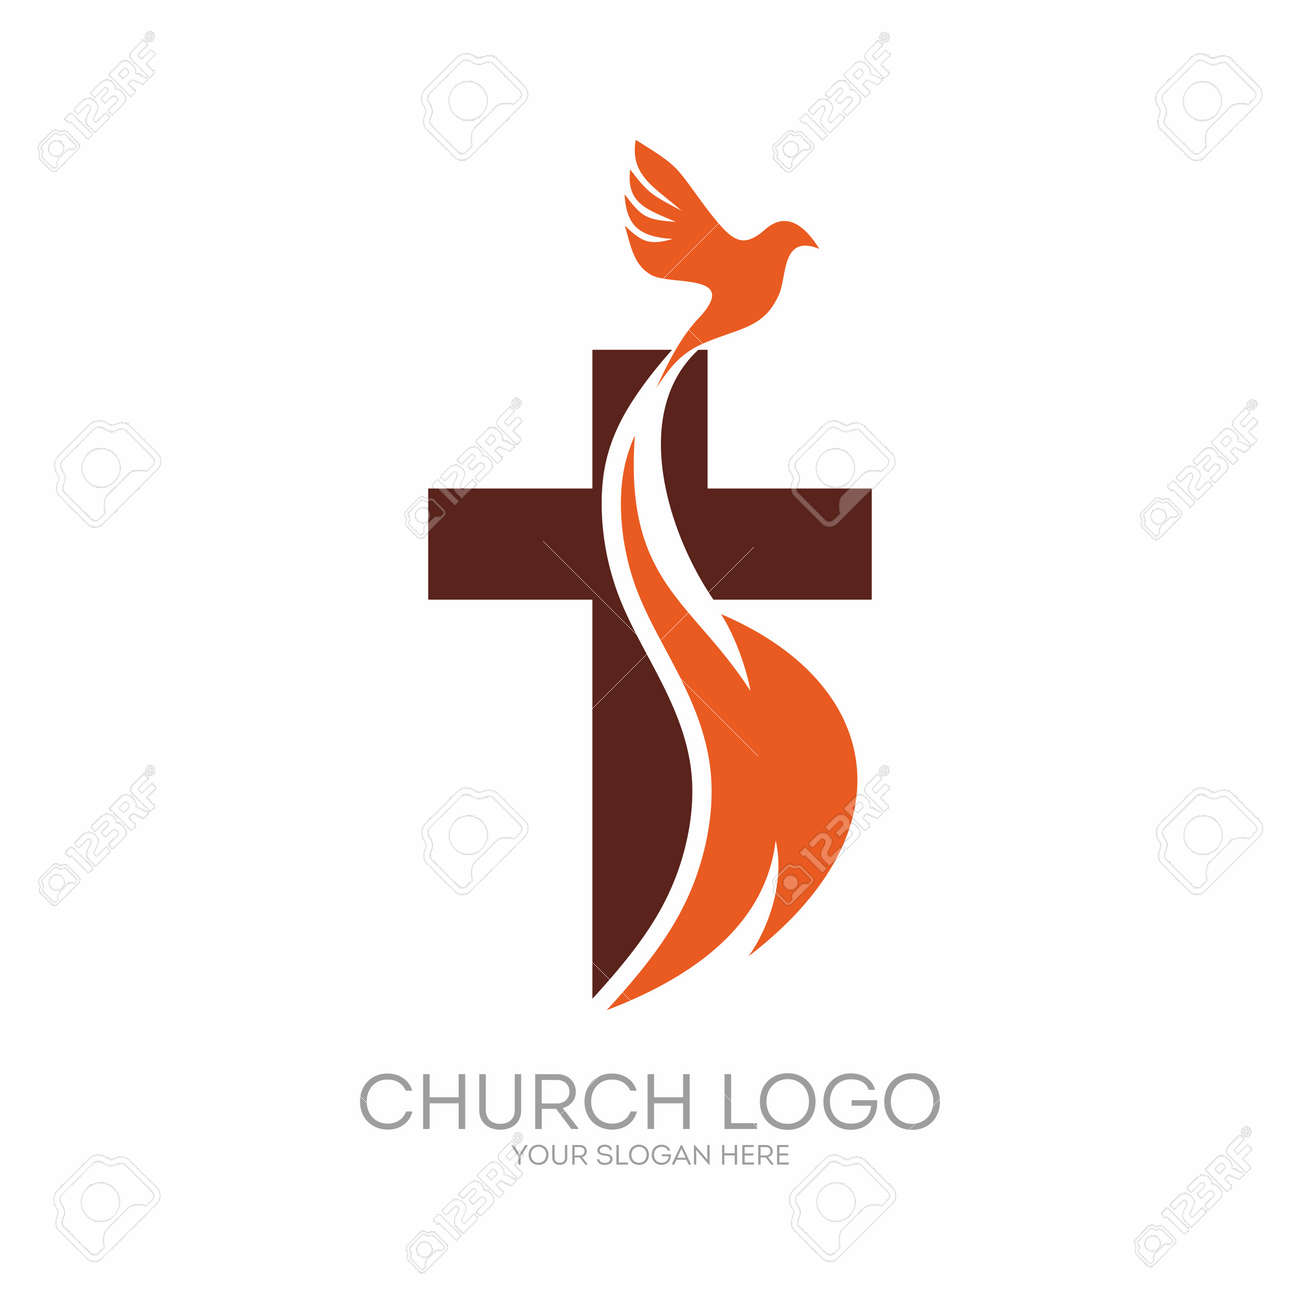 Church logo. Christian symbols. The Cross of Jesus, the fire of the Holy Spirit and the dove. - 65715331